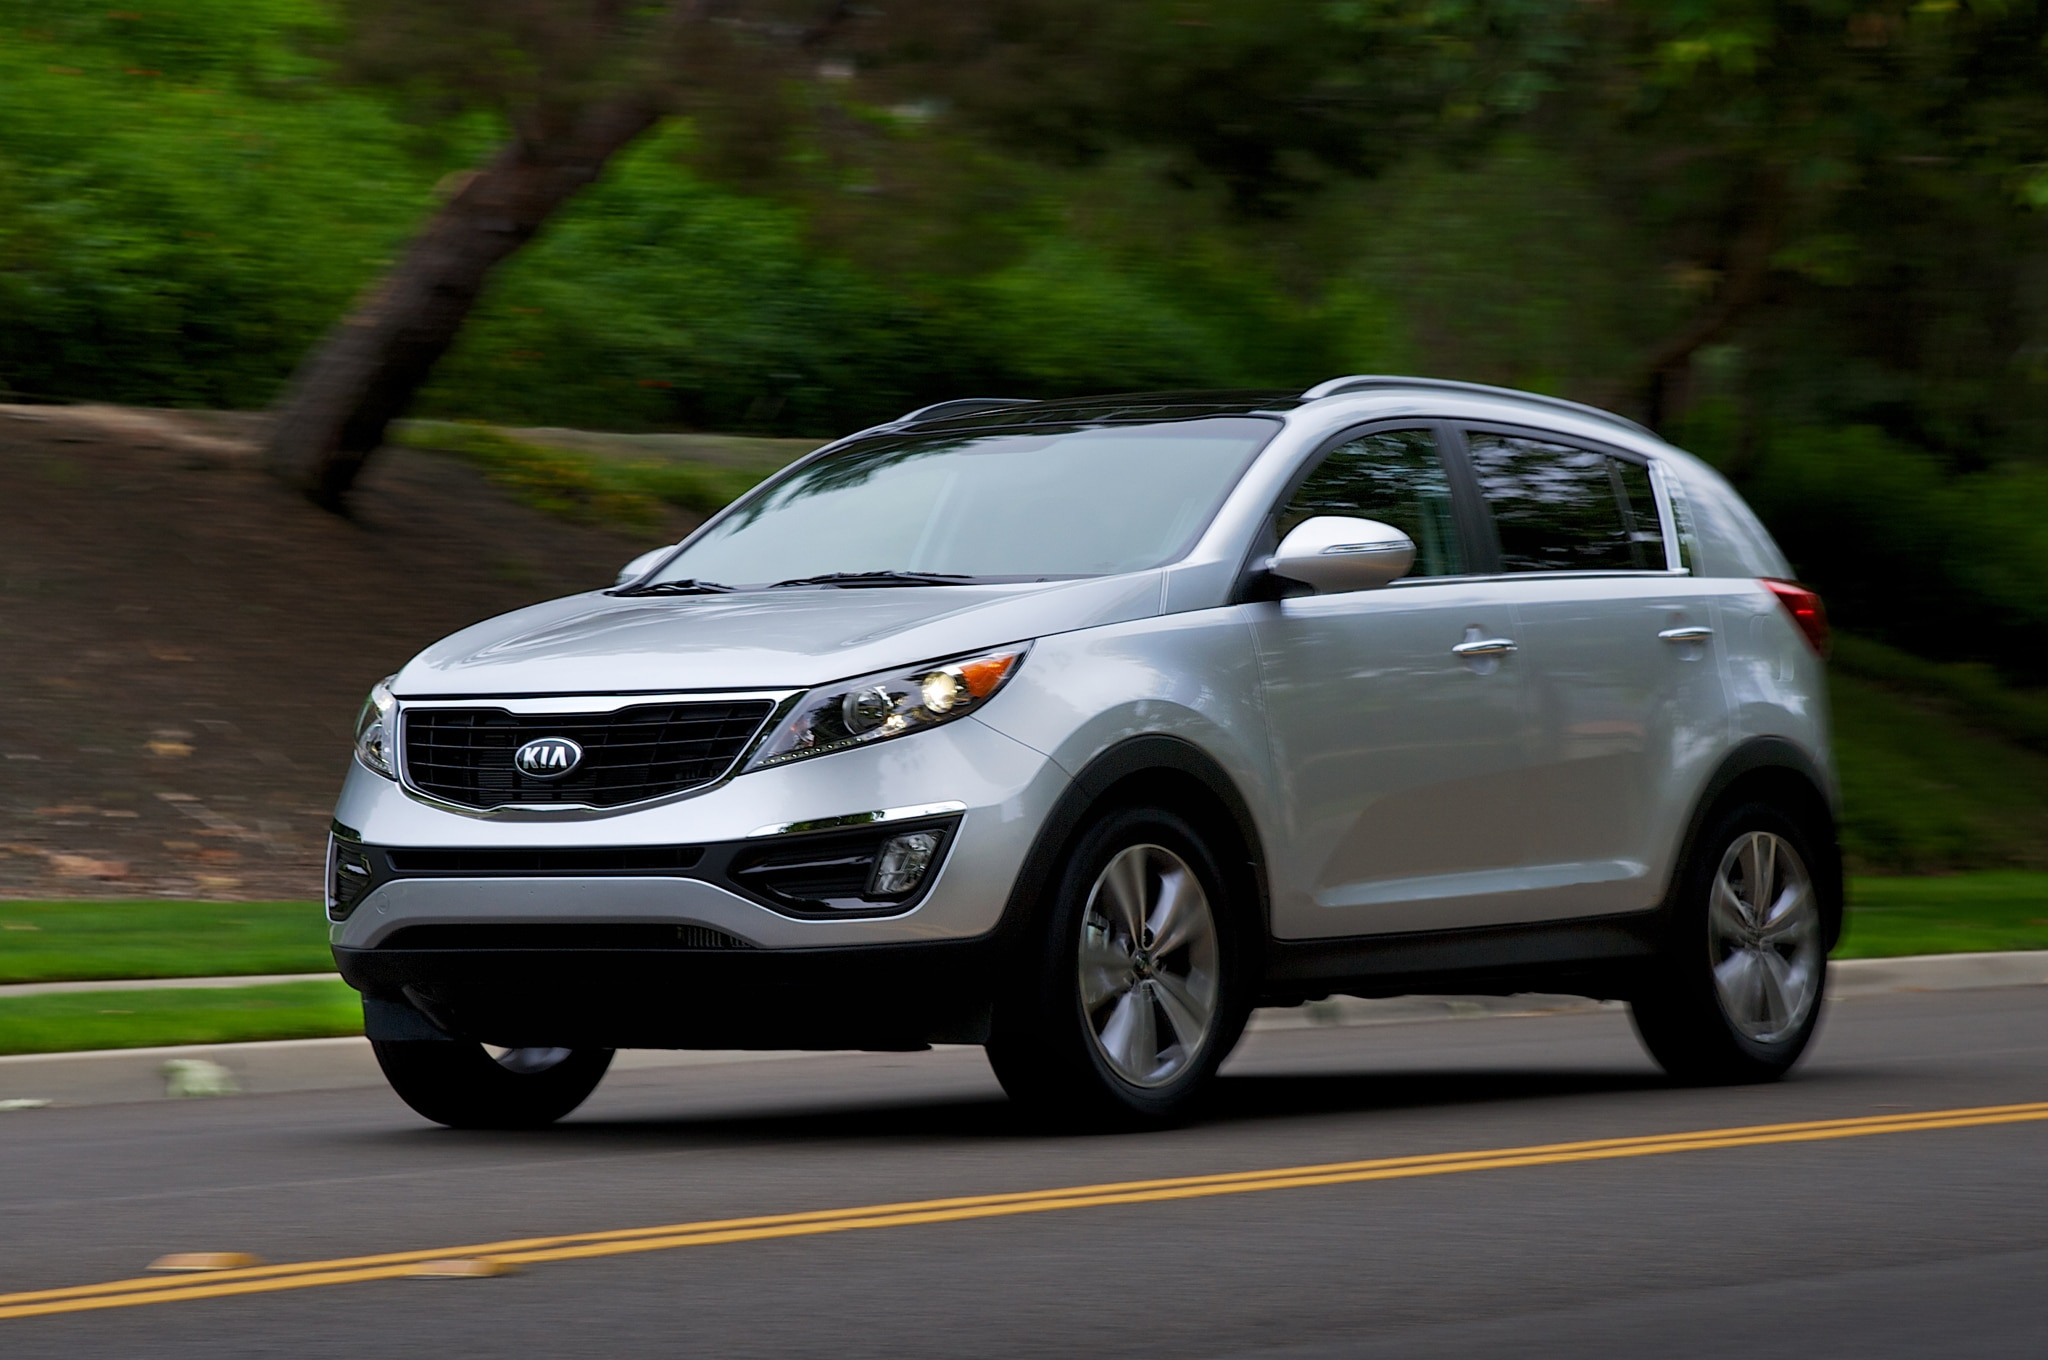 medium resolution of 2014 kia sportage gets new gdi engine detail changes truck trend2014 kia sportage gets new